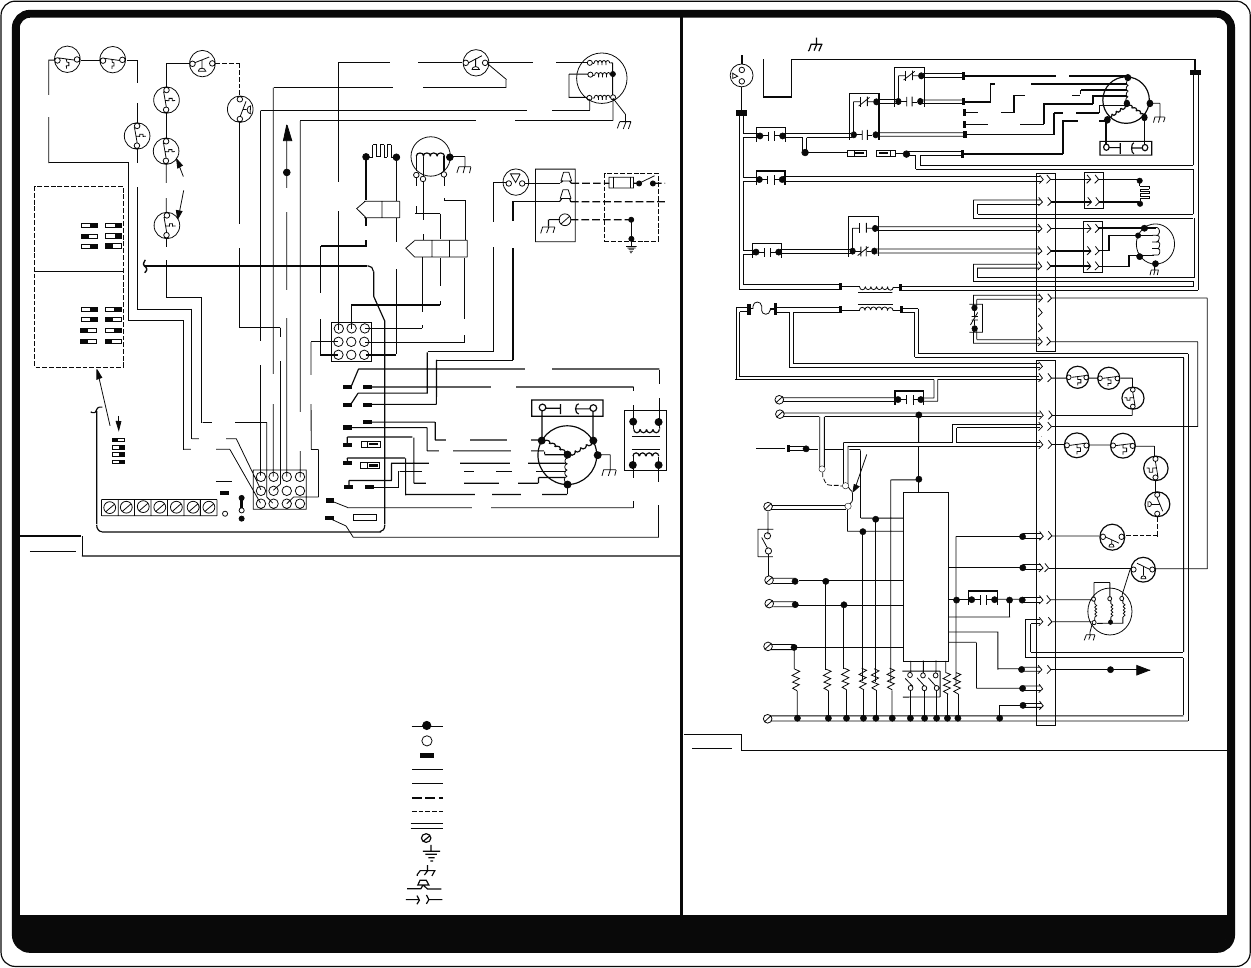 c2b73d22 c45f 43df a574 b6e707ea0cc7 bg8 bryant furnace diagram 100 images bryant gas heater wiring bryant air conditioner wiring diagram at readyjetset.co